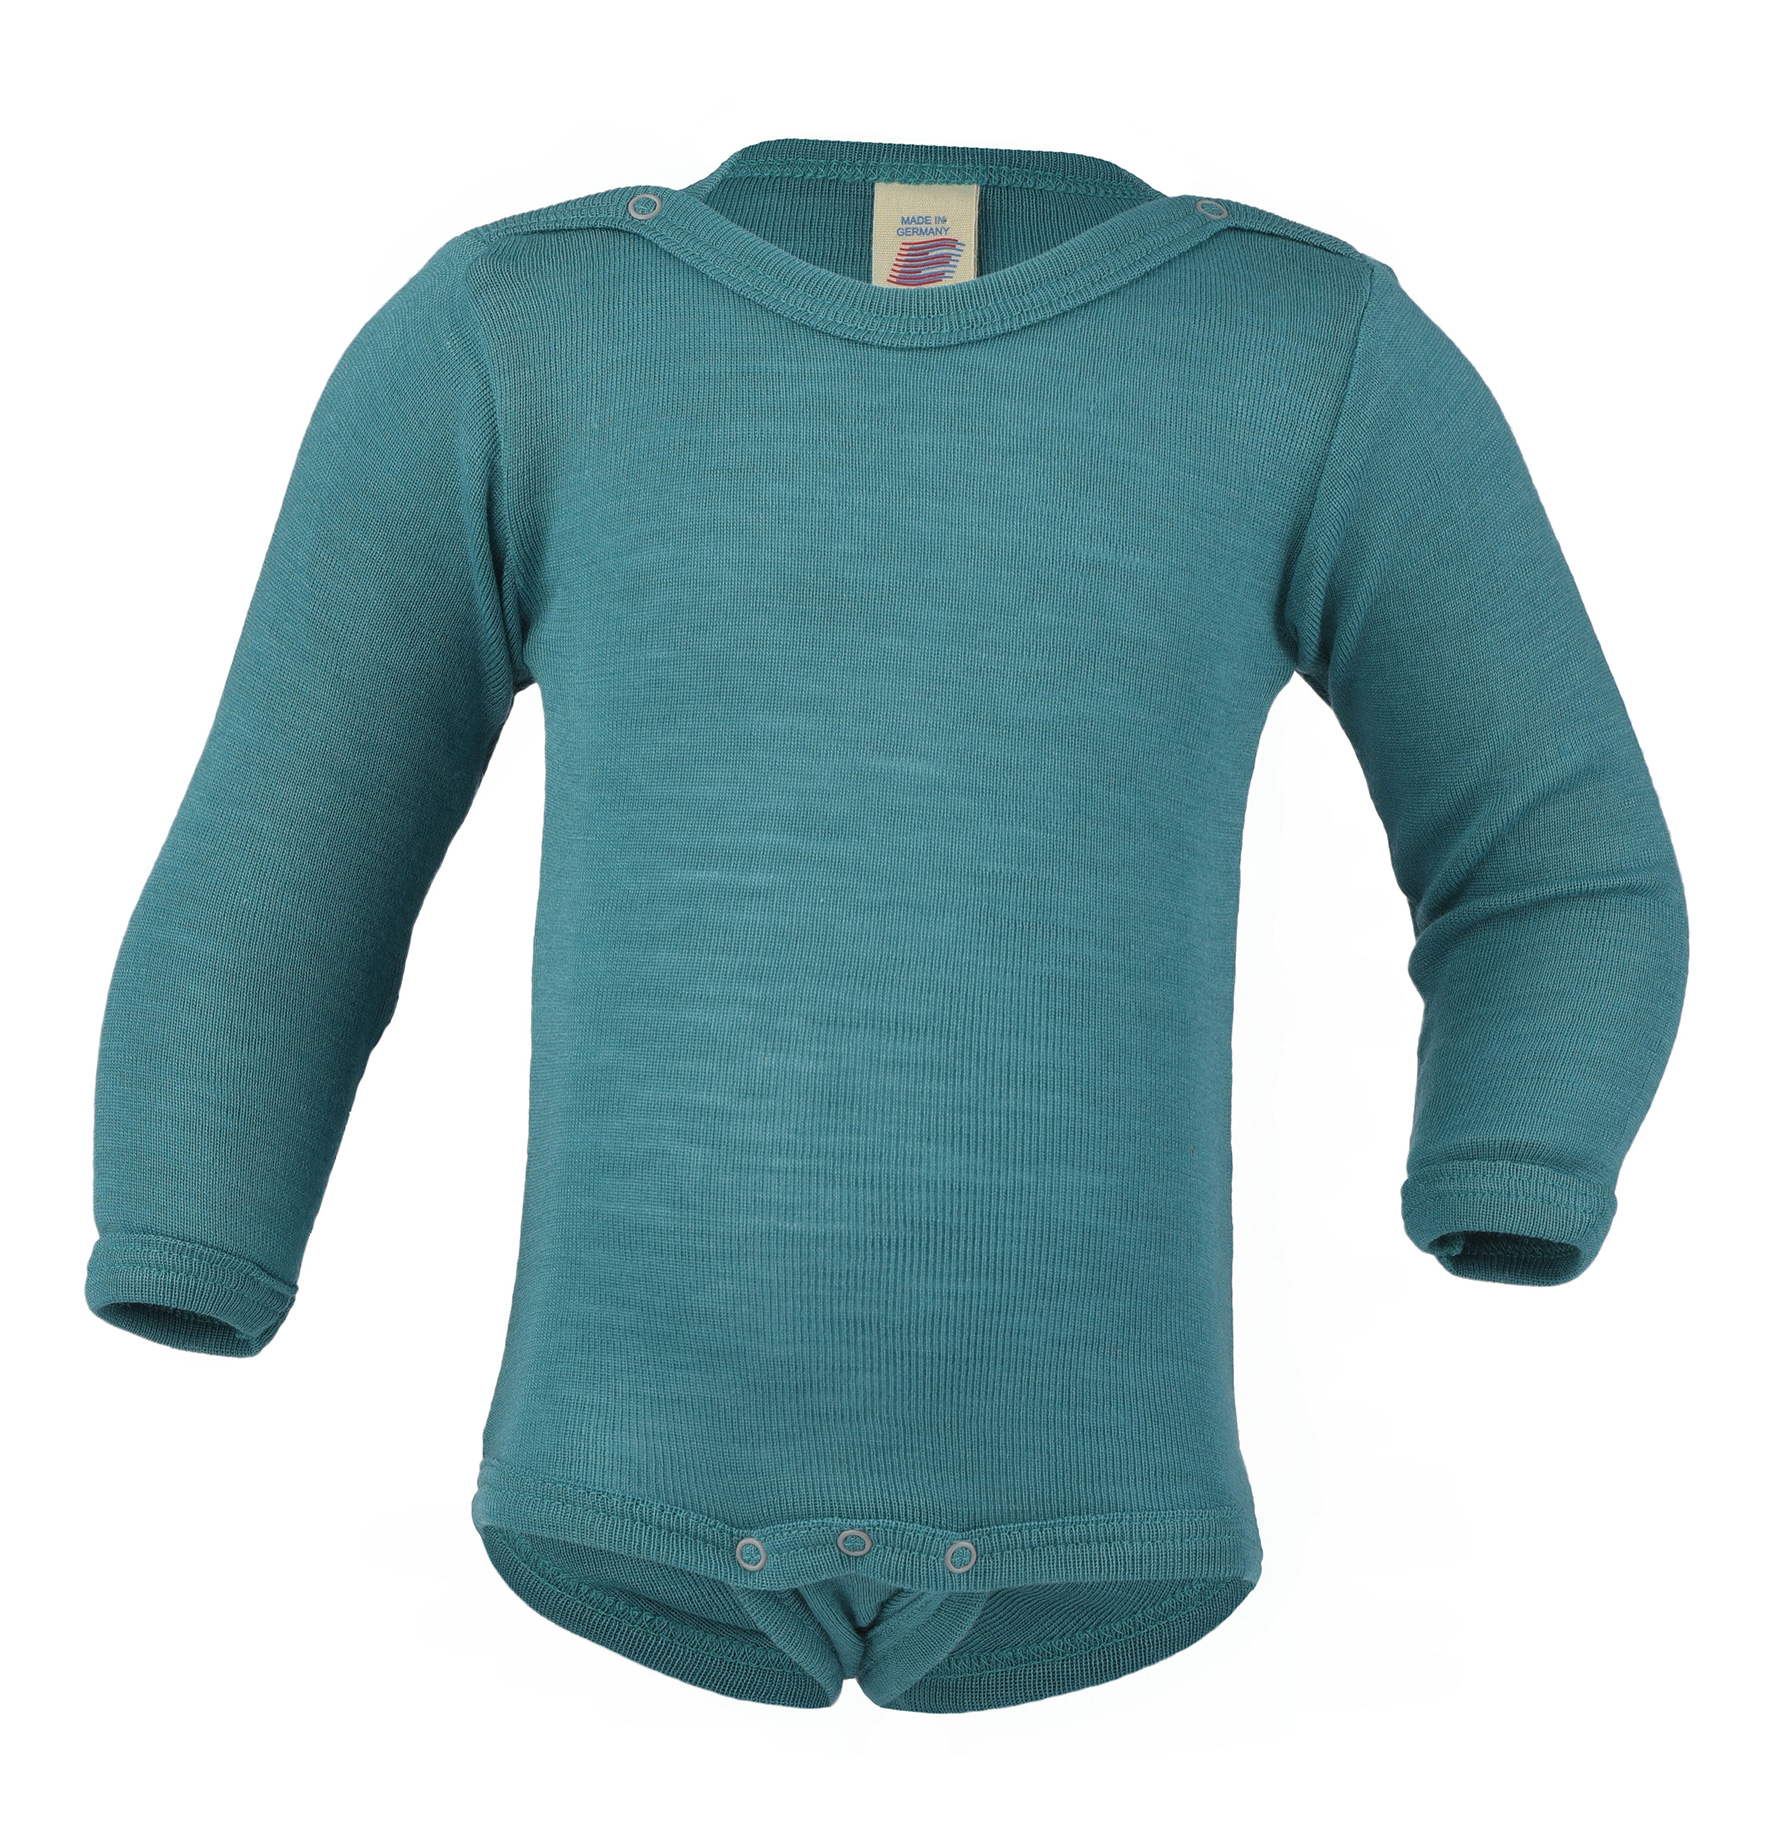 Merino/hedvábí body Engel - ice blue